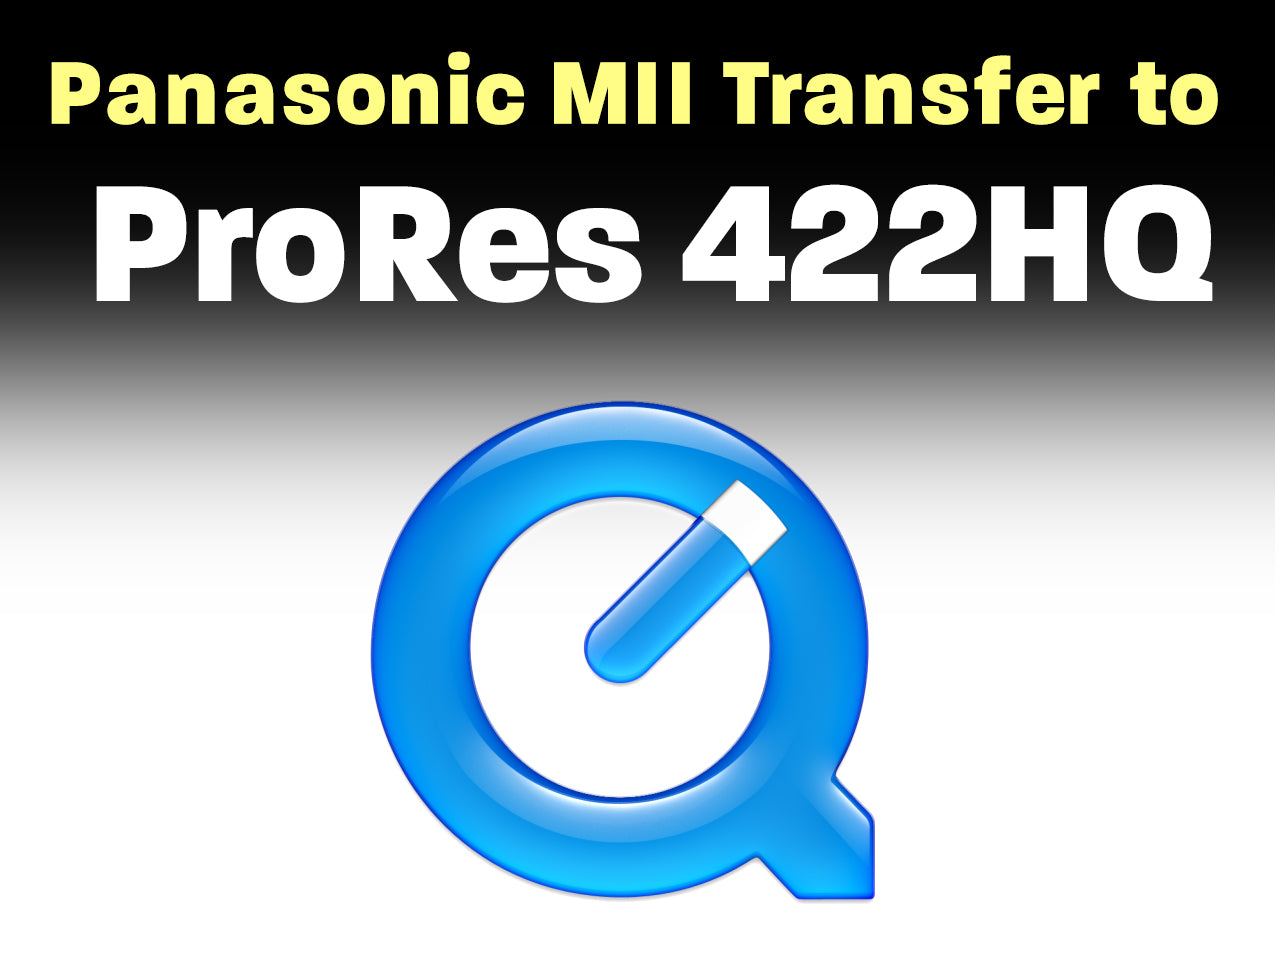 Panasonic MII to ProRes 422 HQ